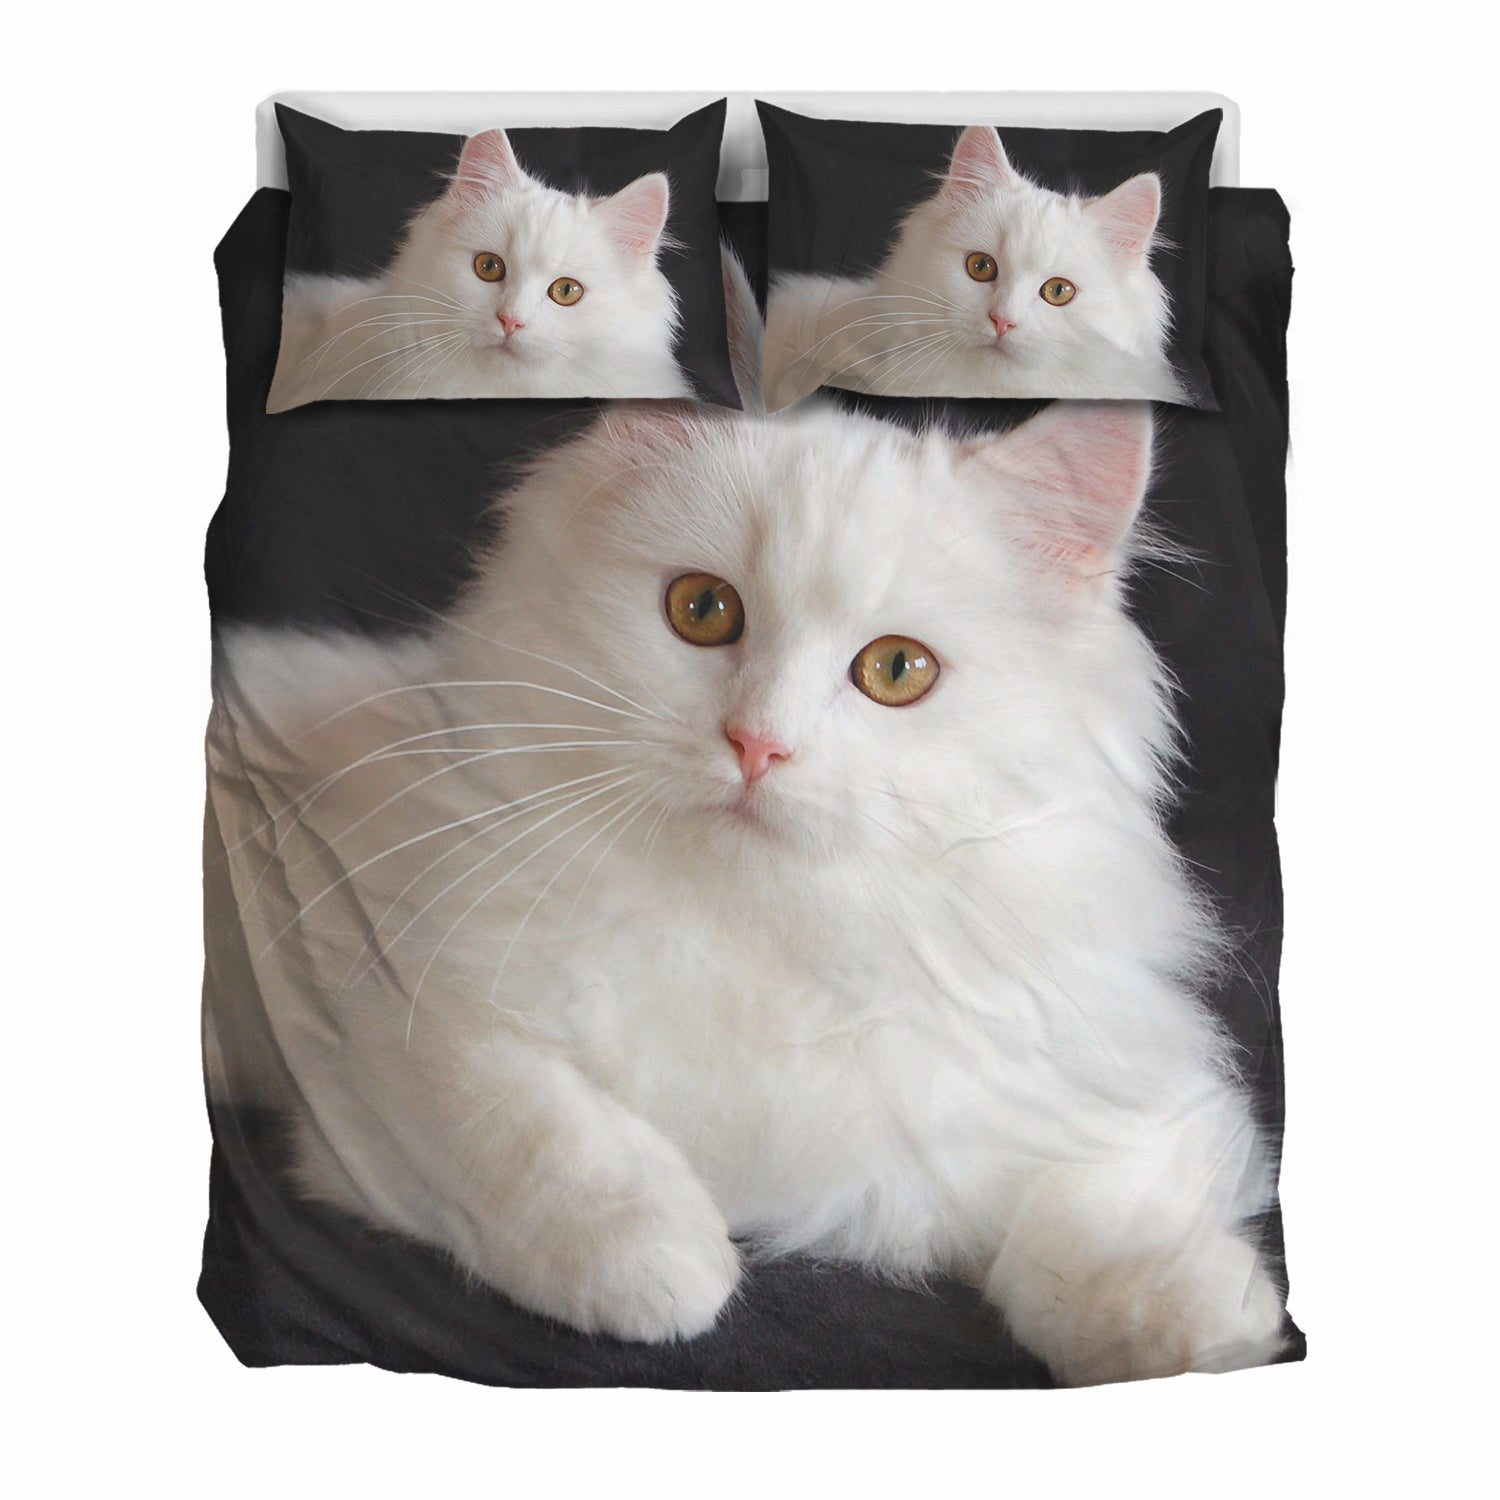 White Persian Cat Bedding Set